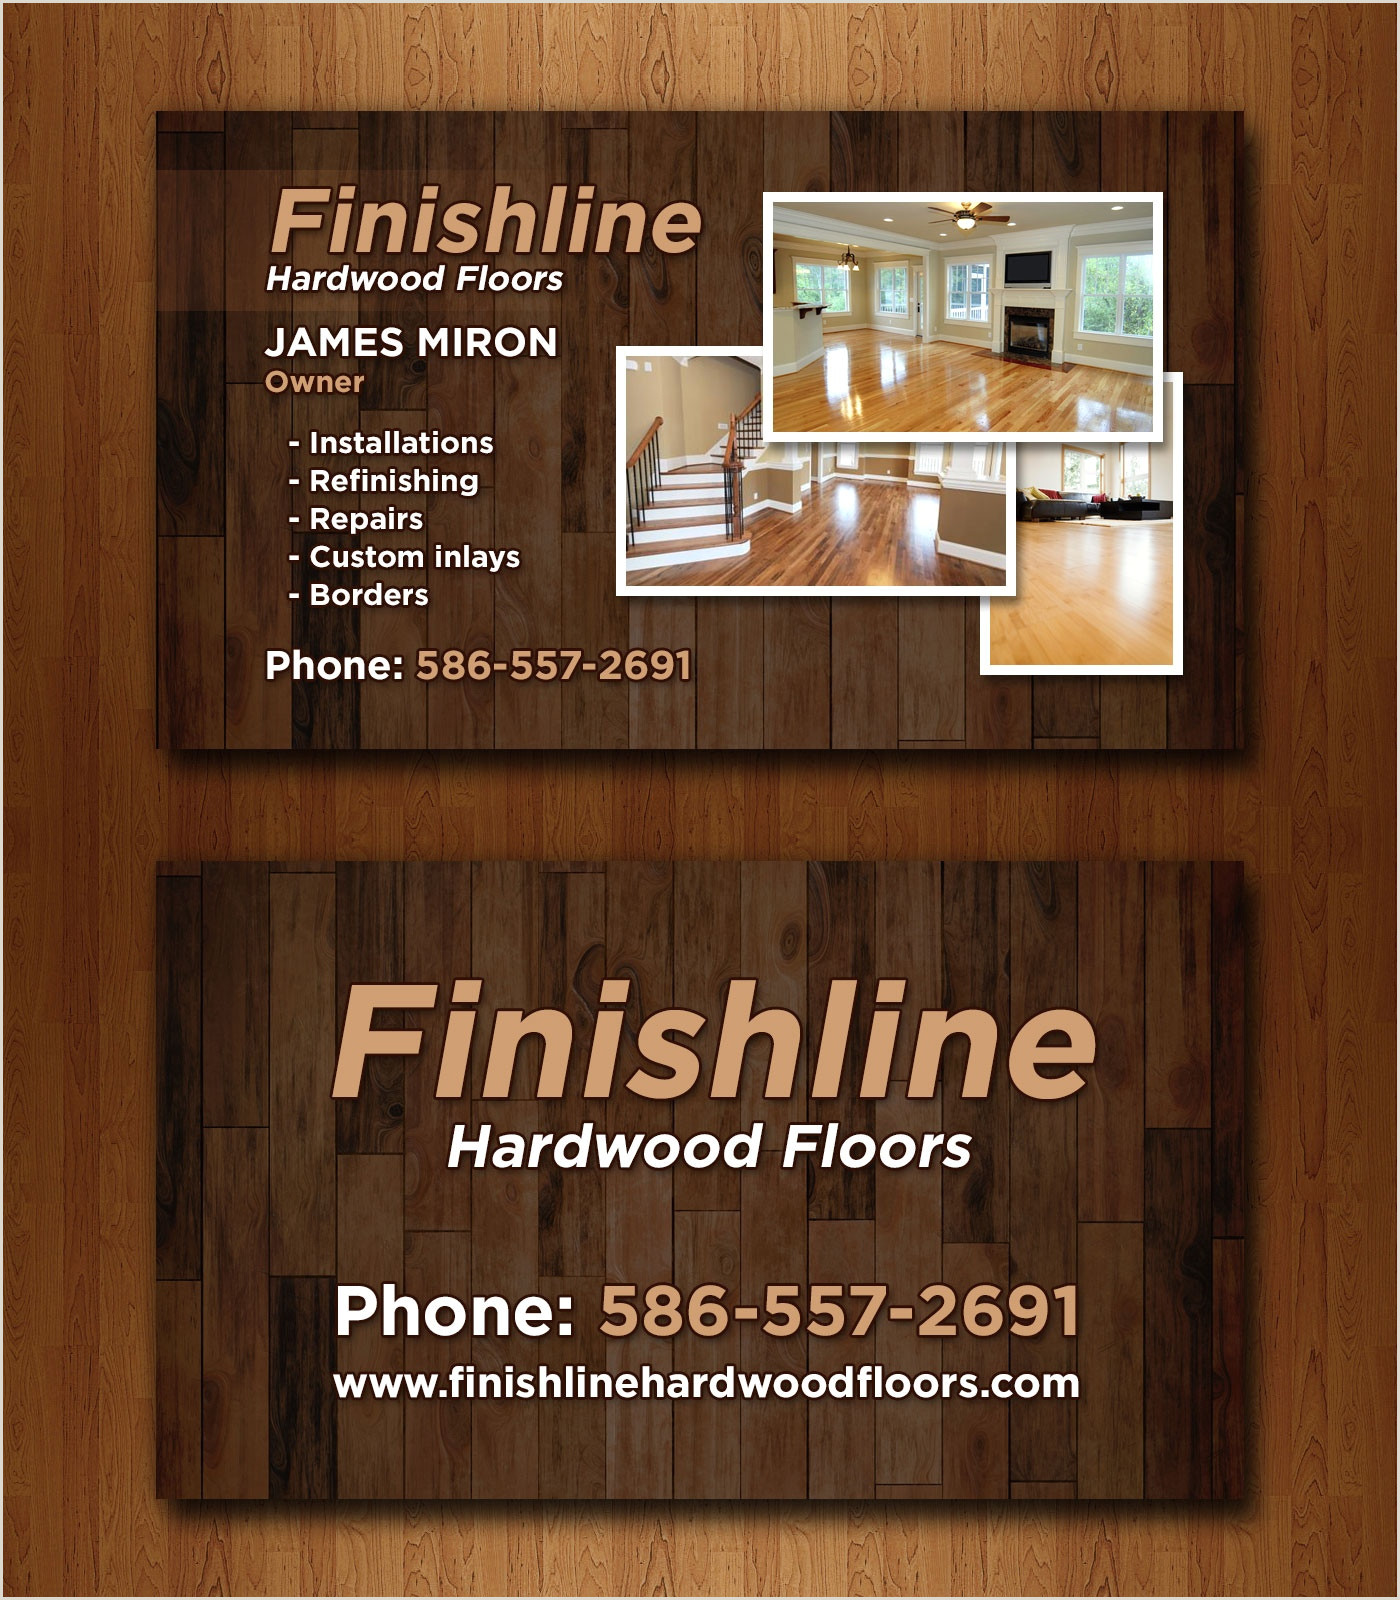 Making Business Cards In Word 14 Popular Hardwood Flooring Business Card Template